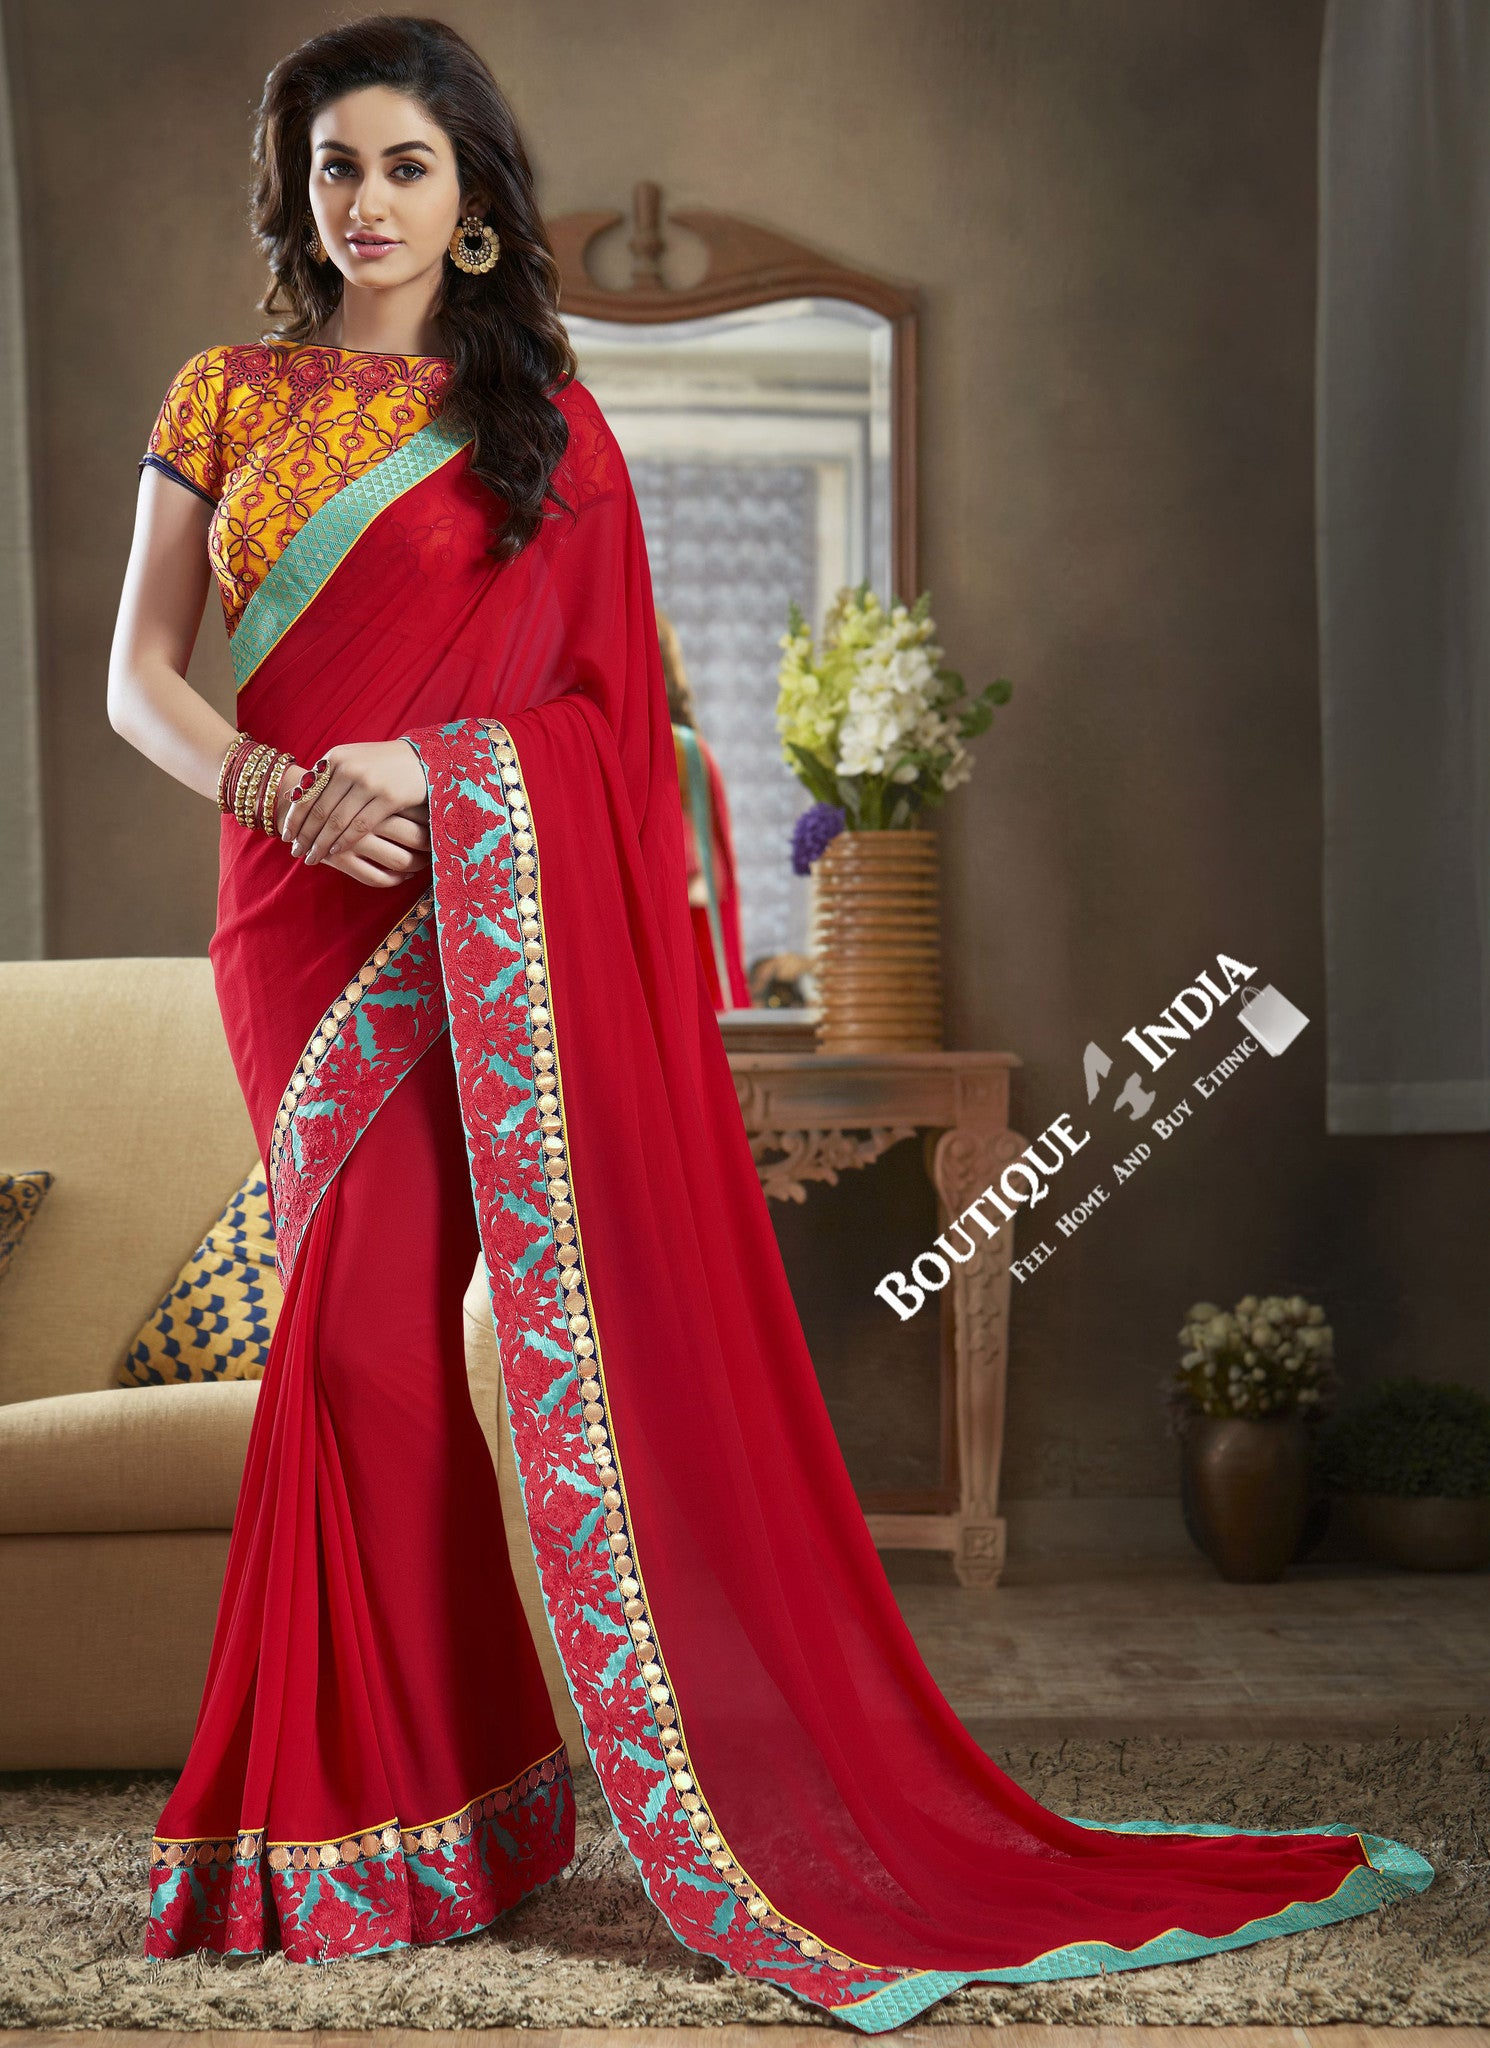 Net Chiffon and Silk Saree with Pink Blue and Orange - Boutique4India Inc.